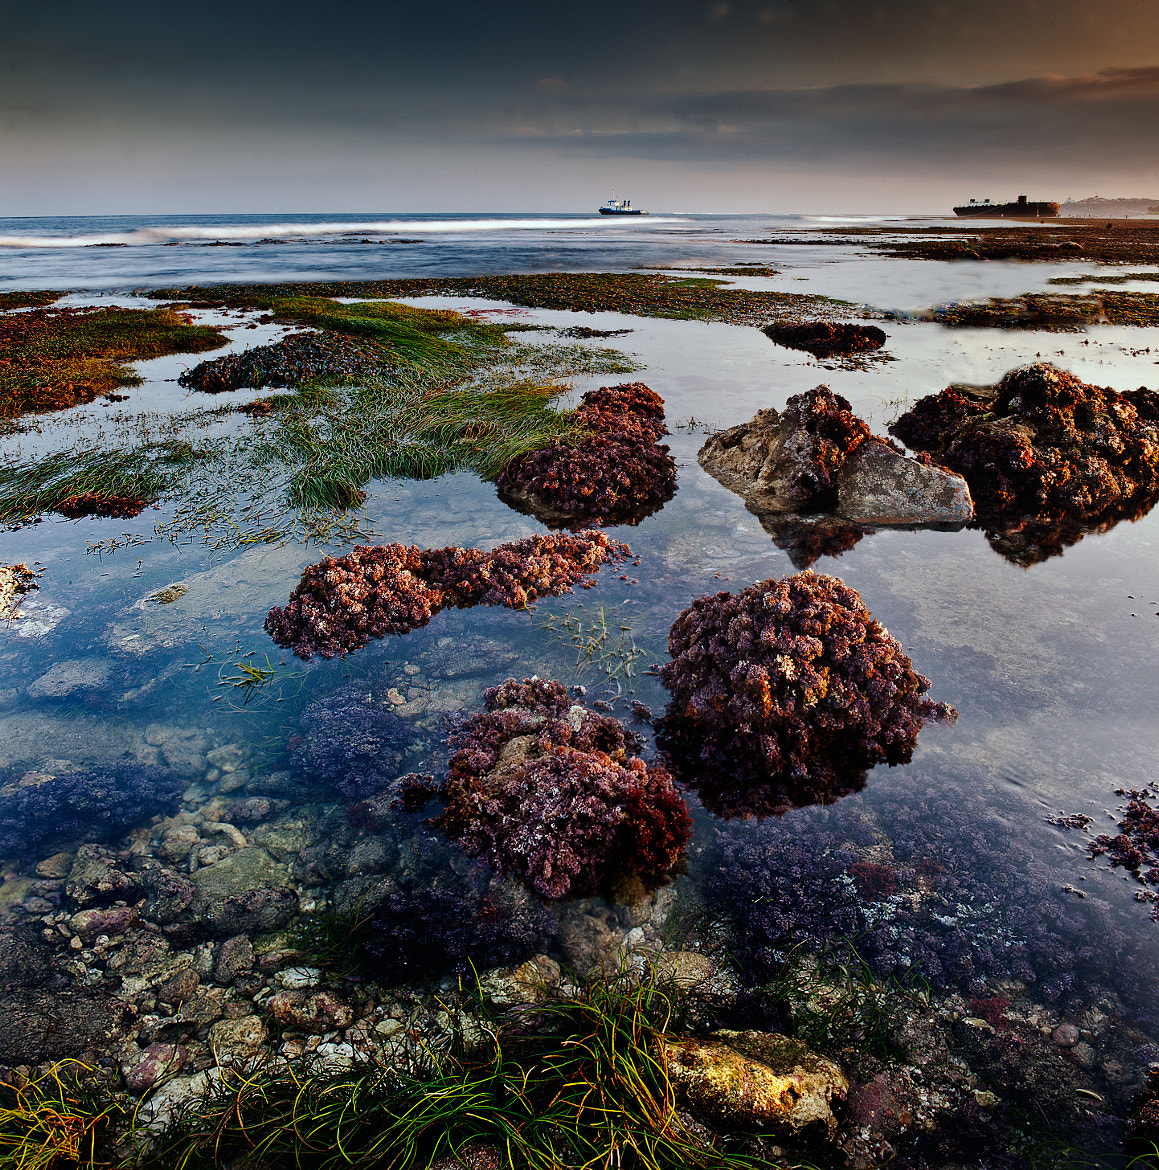 Photograph Nusa Dua Bali by lim theam hoe on 500px